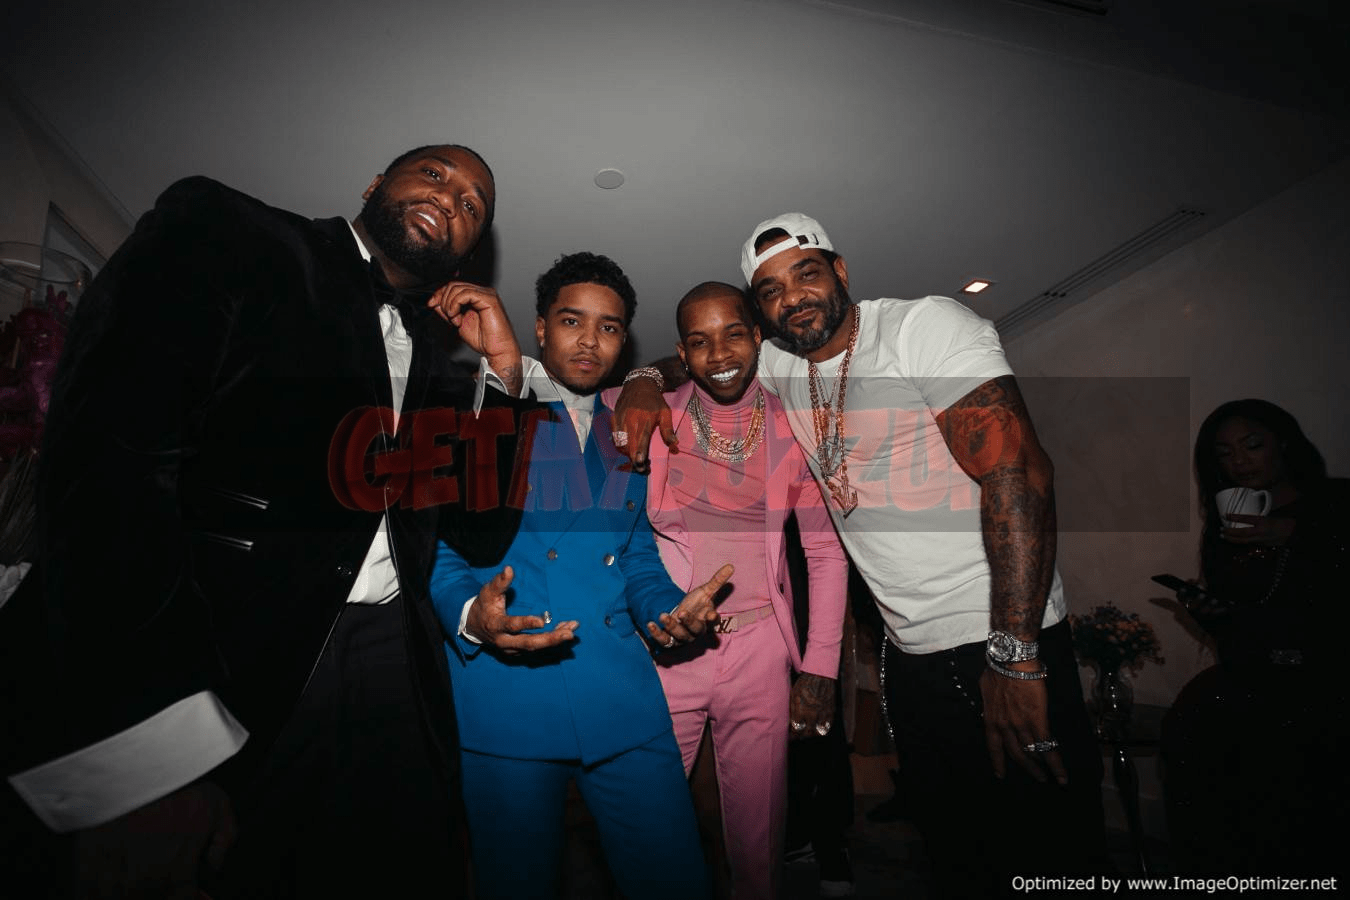 Celeb Sightings: Justin Combs and Tory Lanez Are All Smiles While Celebrating The New Year with a Star-studded Soiree Presented by CÎROC [Photos]